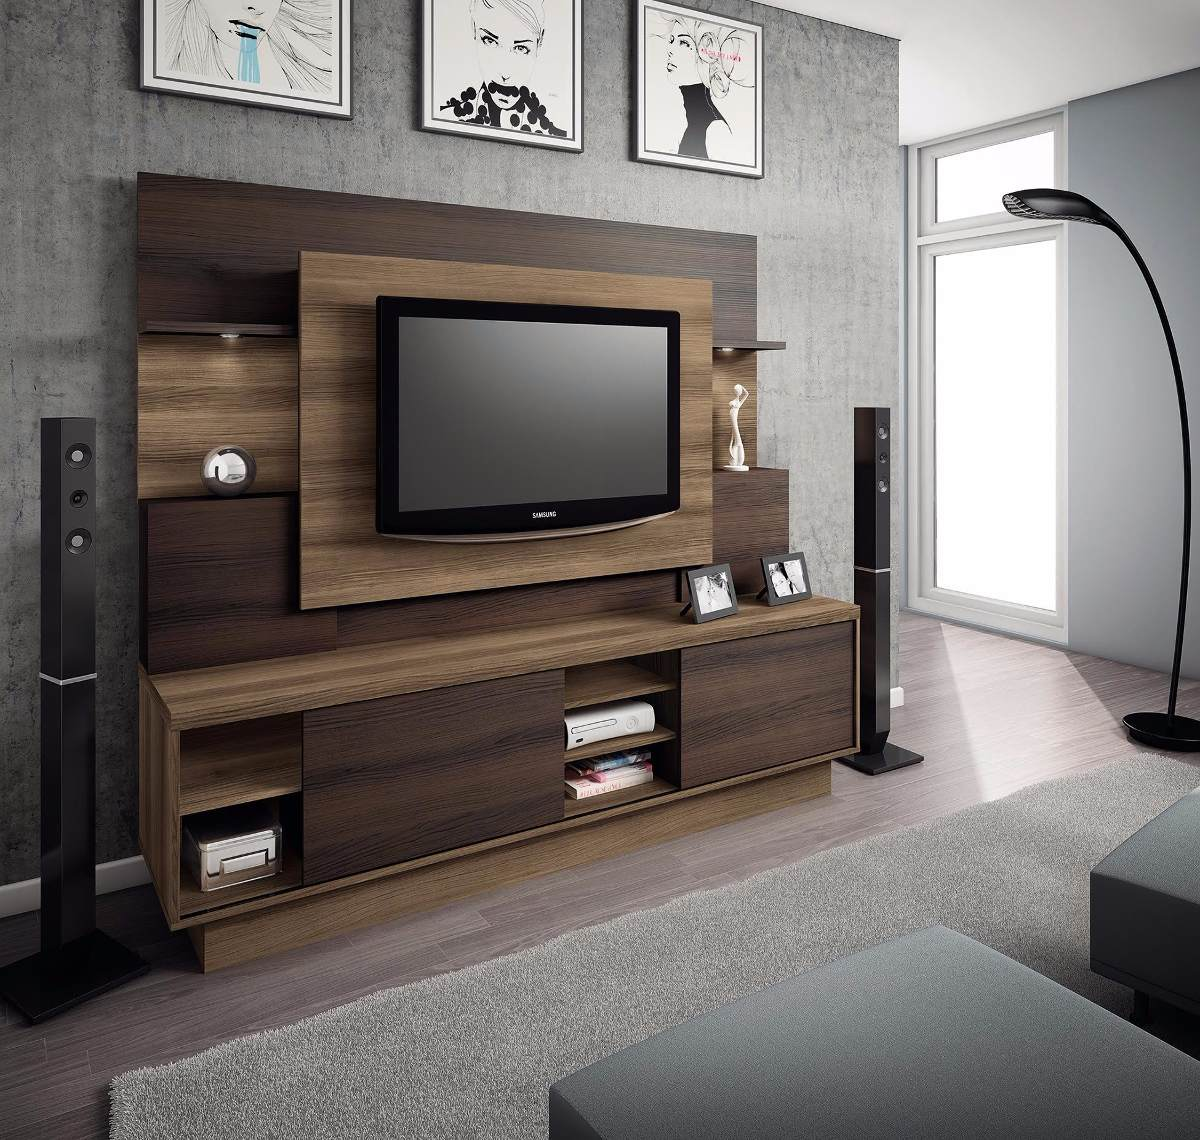 Mueble rack home roma tv 42 a 55 ikean en for Muebles para el tv